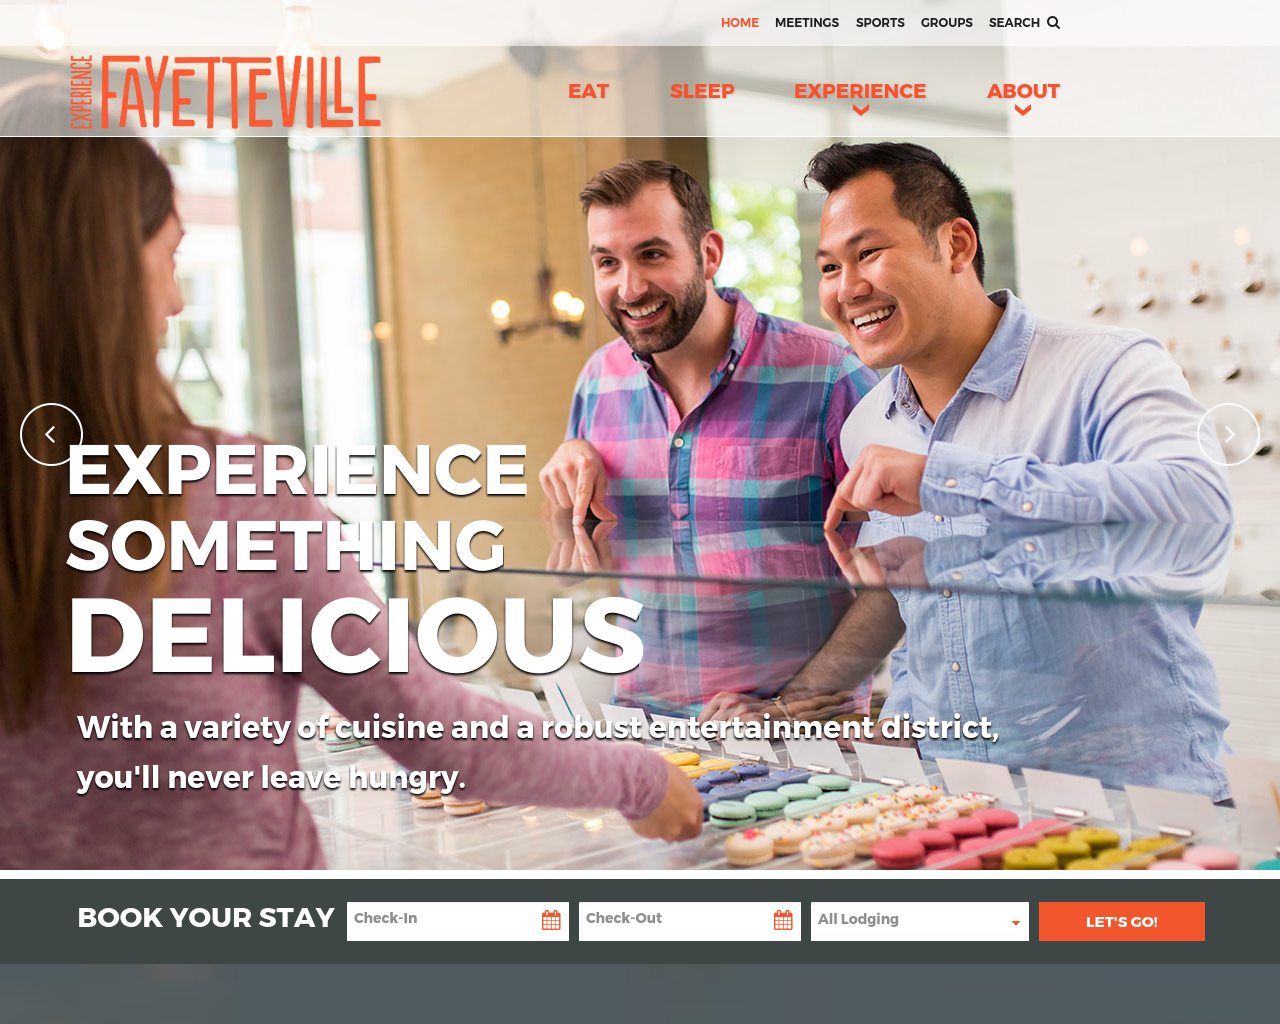 Experience-Fayetteville-Advertising-Reviews-Pricing